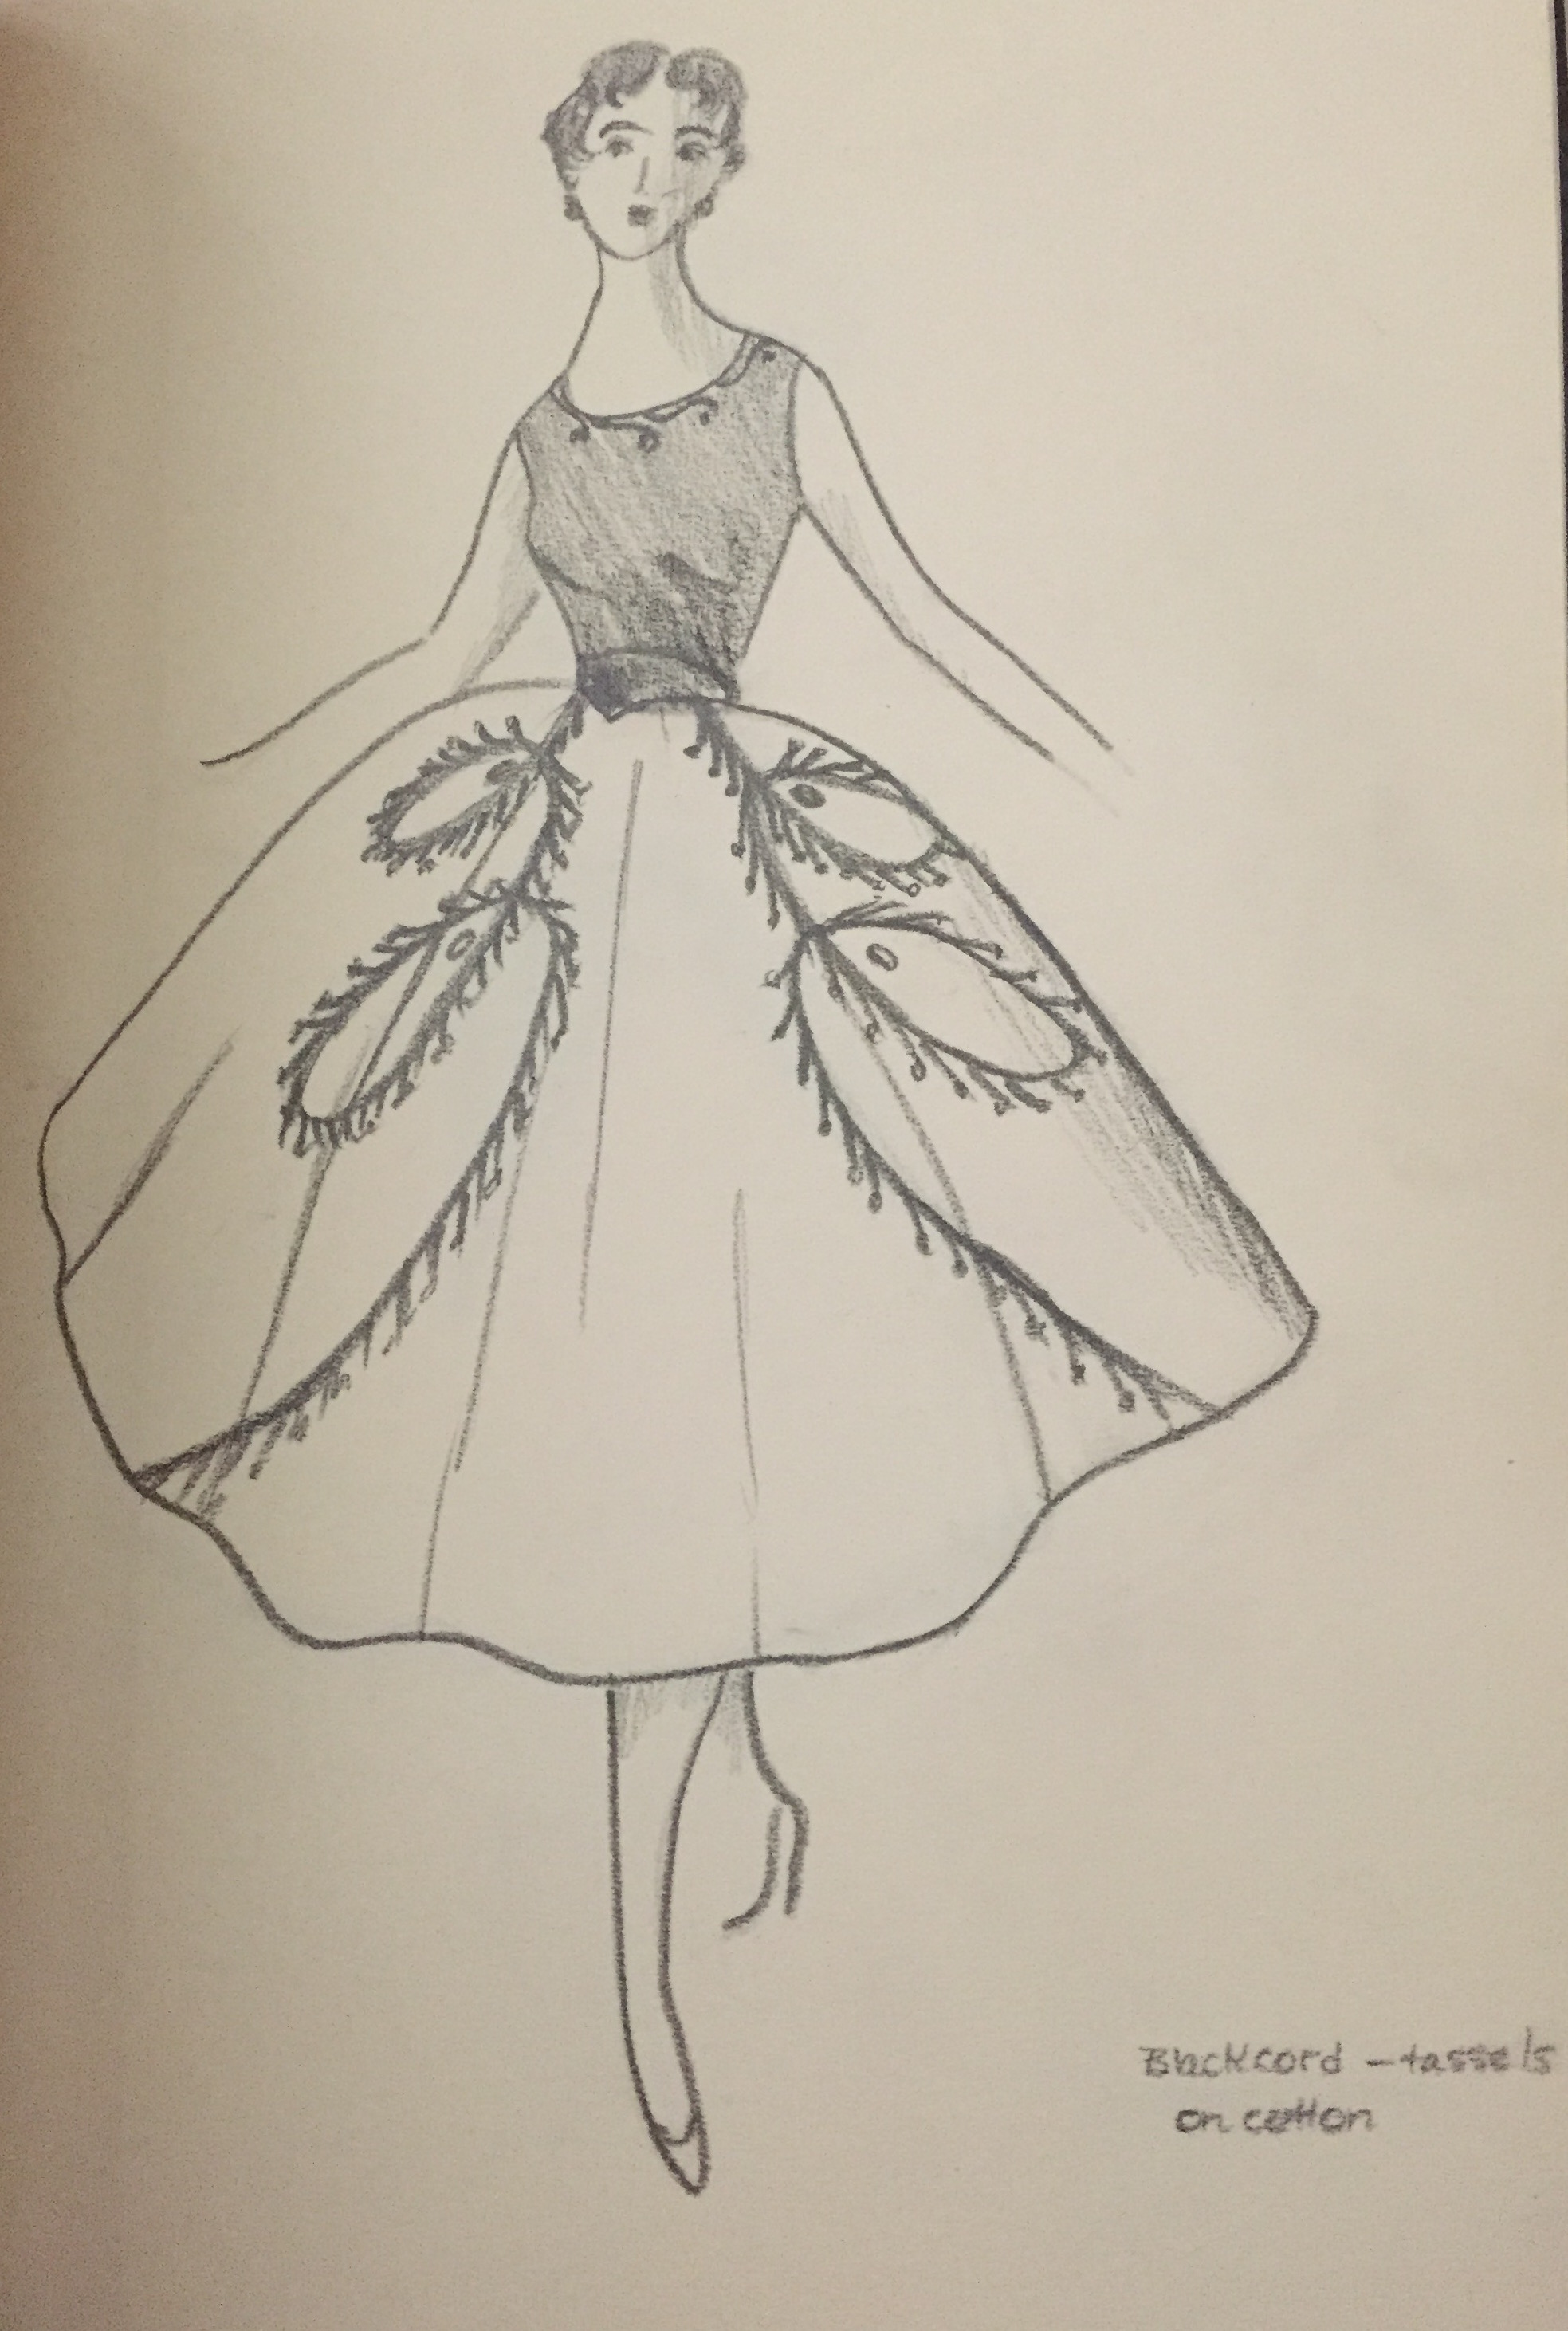 Talented Tuesday Helen Cooper S Fashion Design Drawings C1950s Heritage Ramblings